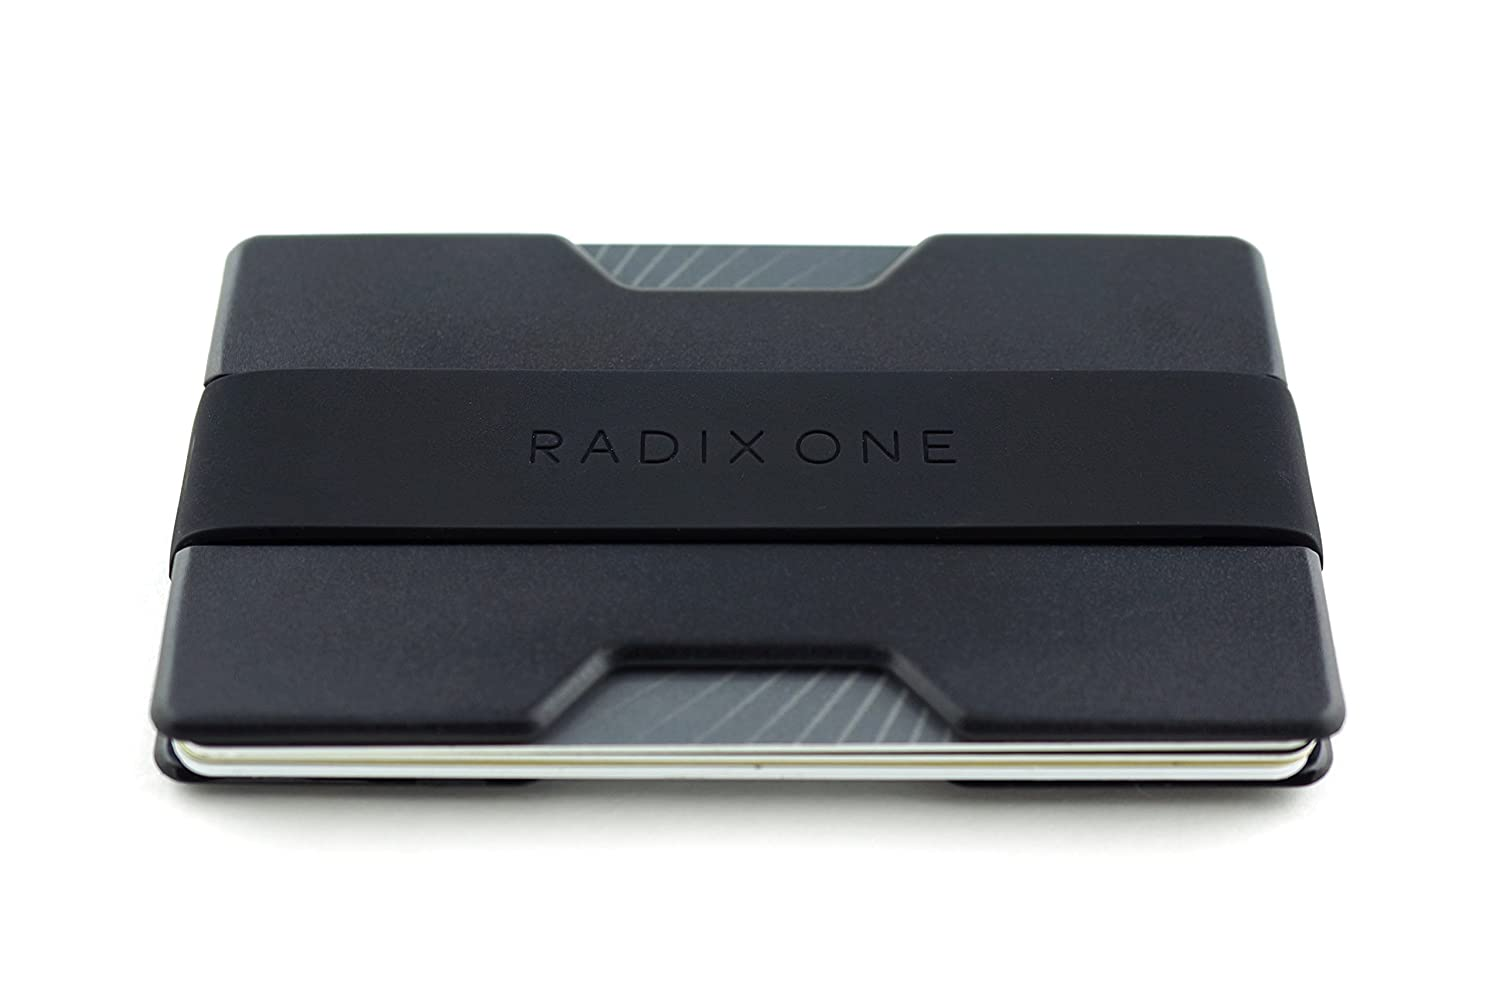 Radix One Slim Wallet (Smoke/Black) Radix Products RDX001SB